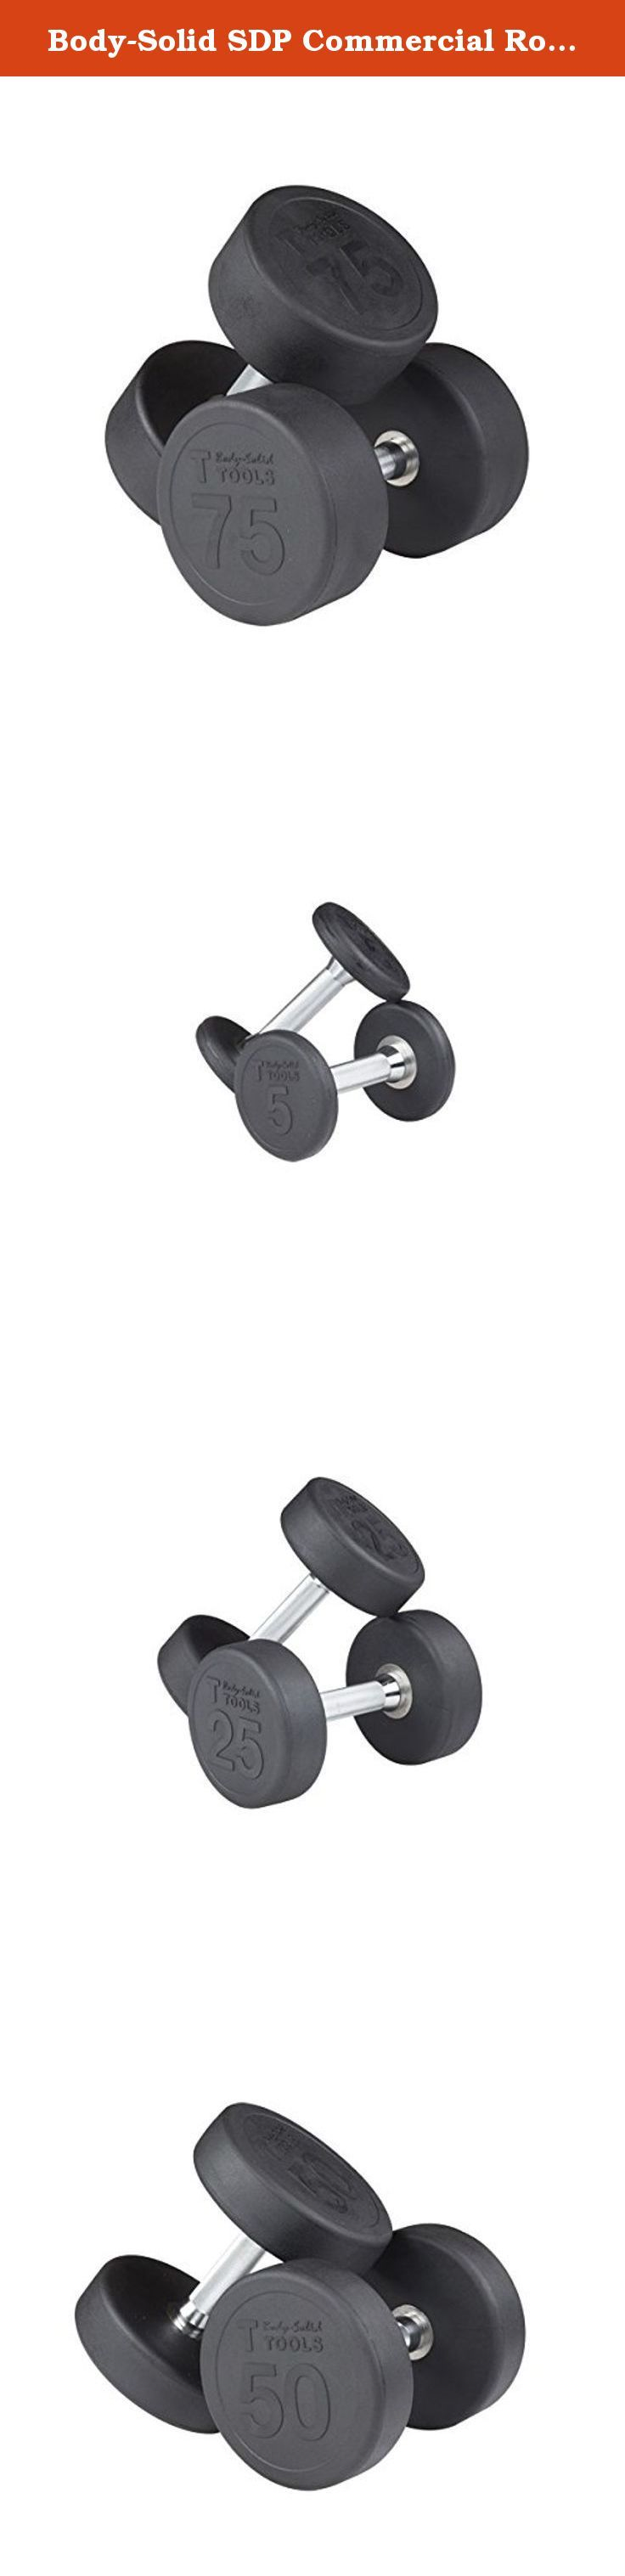 Body-Solid SDP Commercial Round Head Rubber Dumbbell Set - 5-75 lbs (15 pairs) - For Clubs and Home Gyms. SDP Series 5-75 lb. Commercial Round Head Rubber Dumbbell Set from Body-Solid (SDPS1200) - Body-Solid's rubber round dumbbells (SDP) are an ideal fit for any residential, vertical market, or commercial application, including home gyms, garage gyms, personal training studios, hotel and resort fitness centers, commercial gyms, and sports performance training centers. The machined solid...